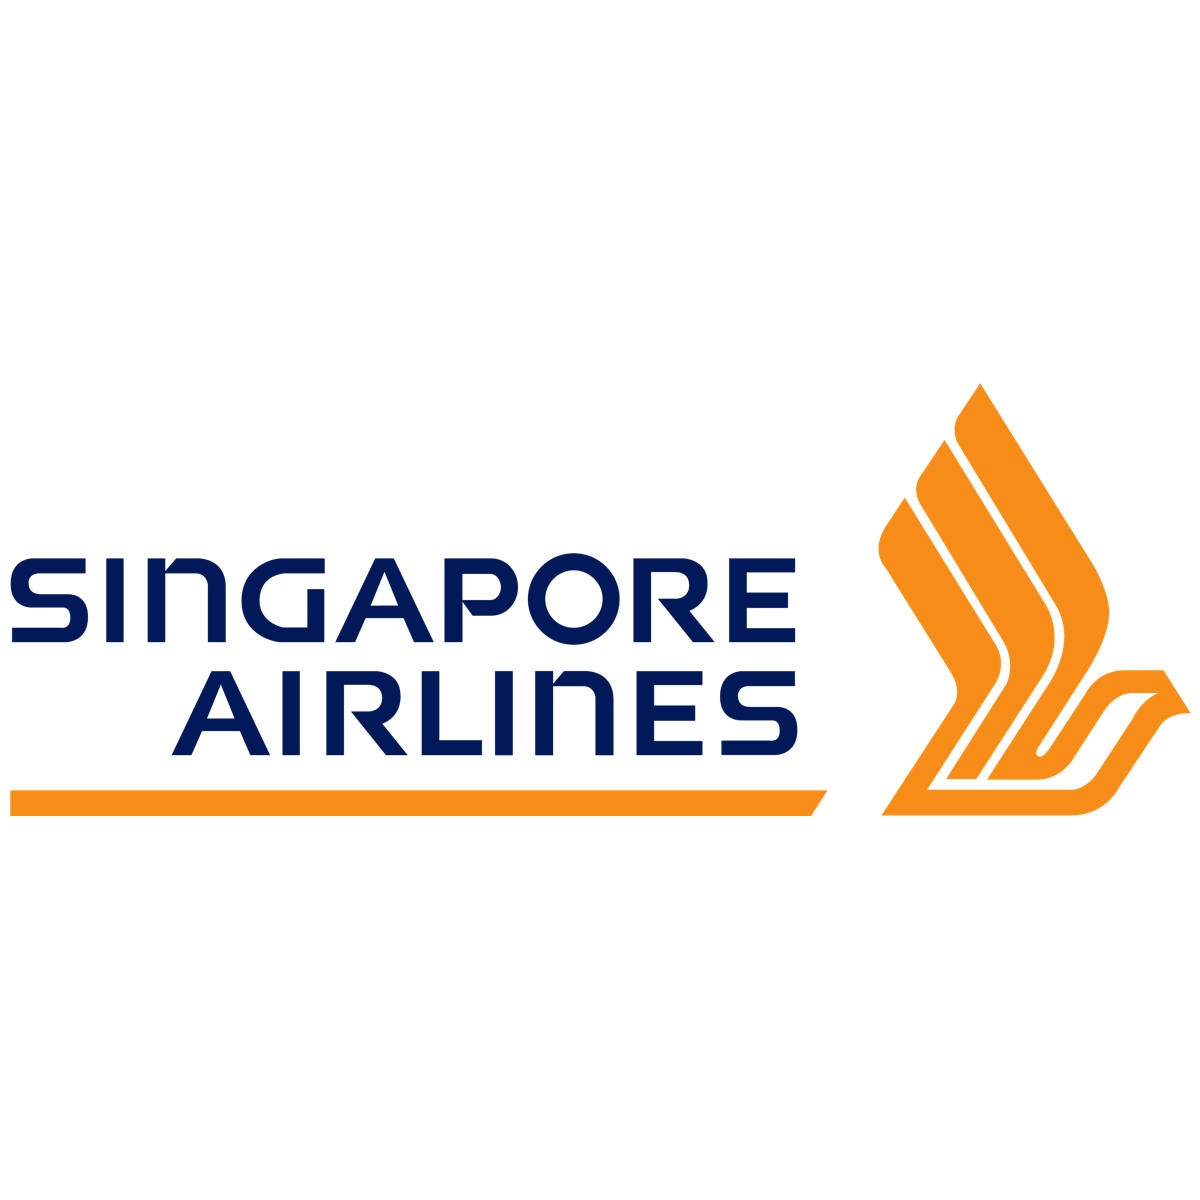 Singapore Airlines (SIA SP) - Maybank Kim Eng 2018-02-08: 3QFY18F Looking Positive, But Upside Capped